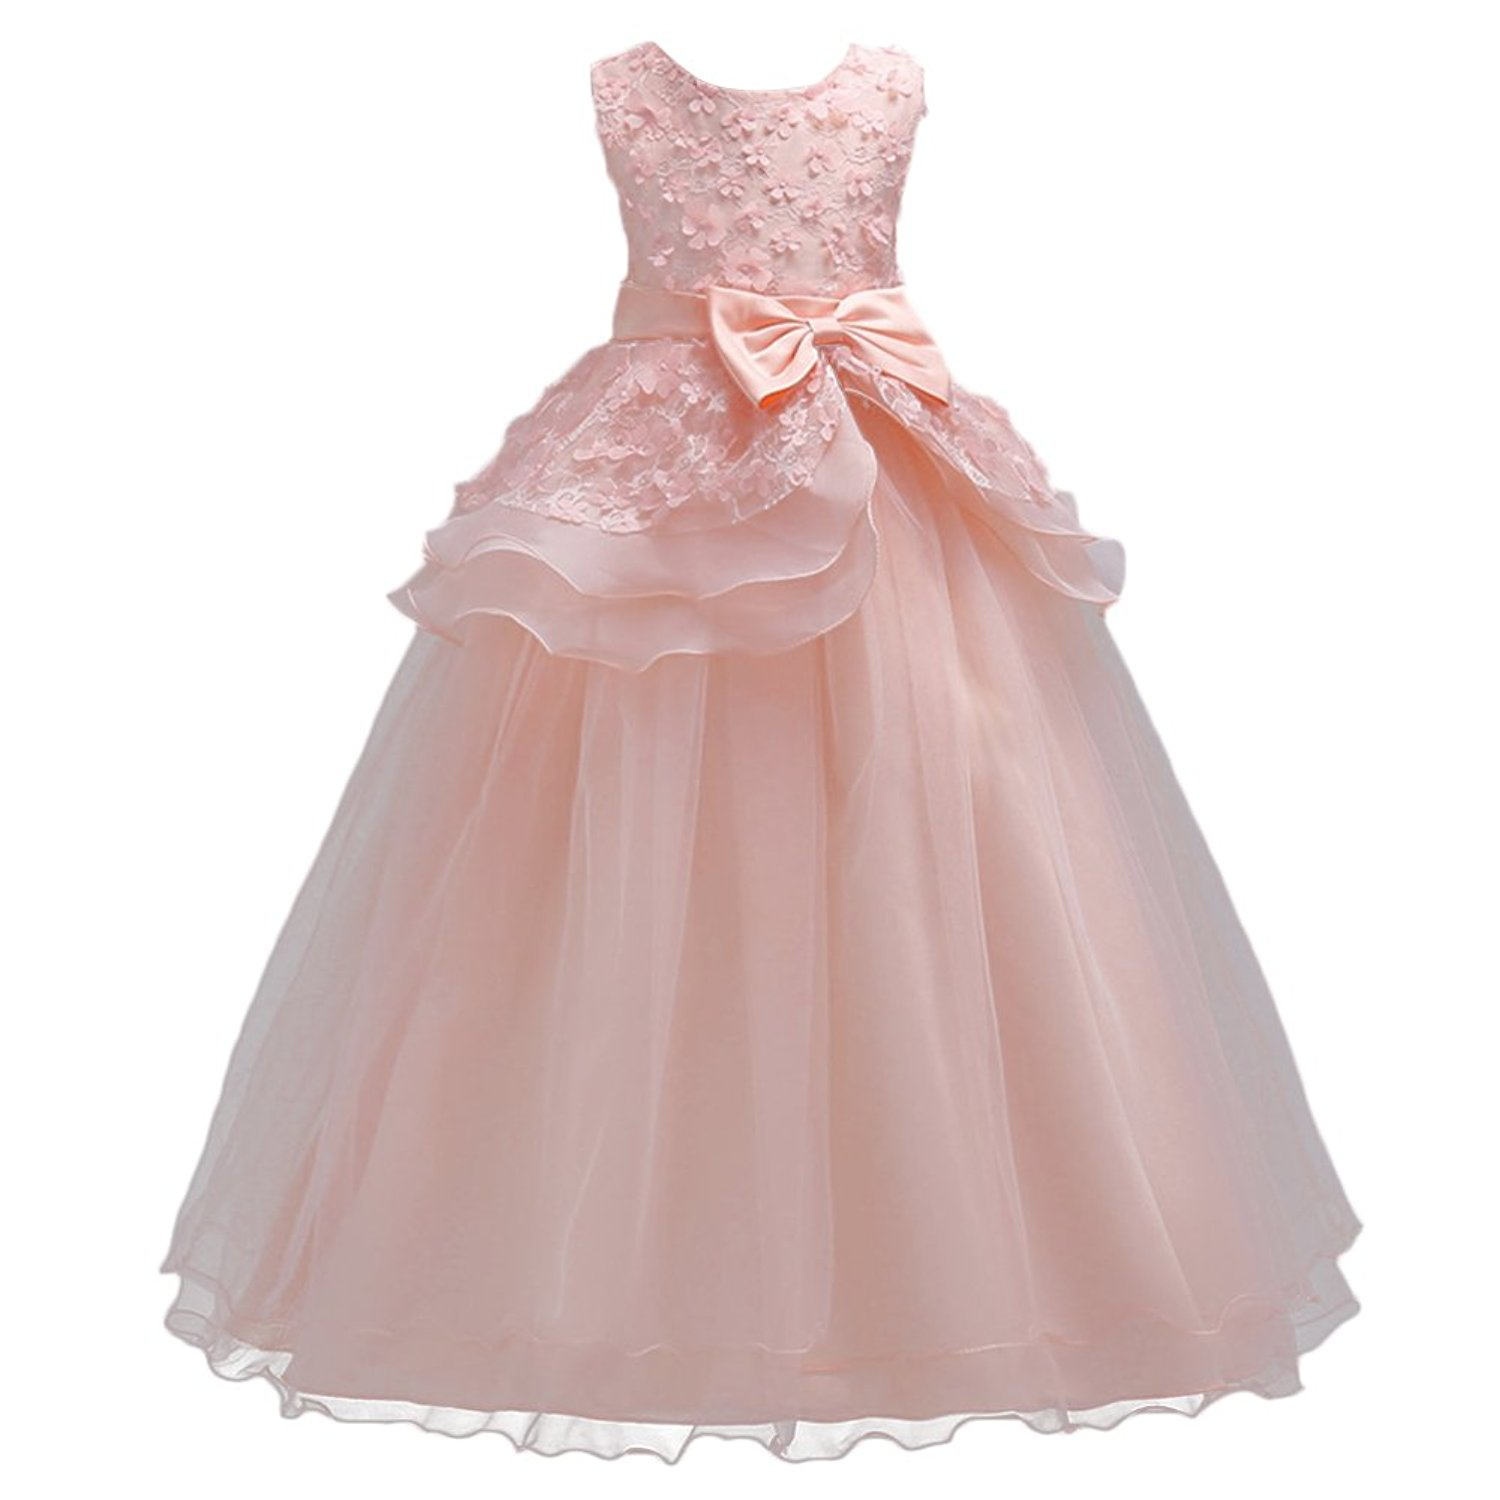 FYMNSI Flower Girls Bowknot Dress Wedding Communion Evening Birthday Party Princess Bridesmaid Wedding Dress 5-16T